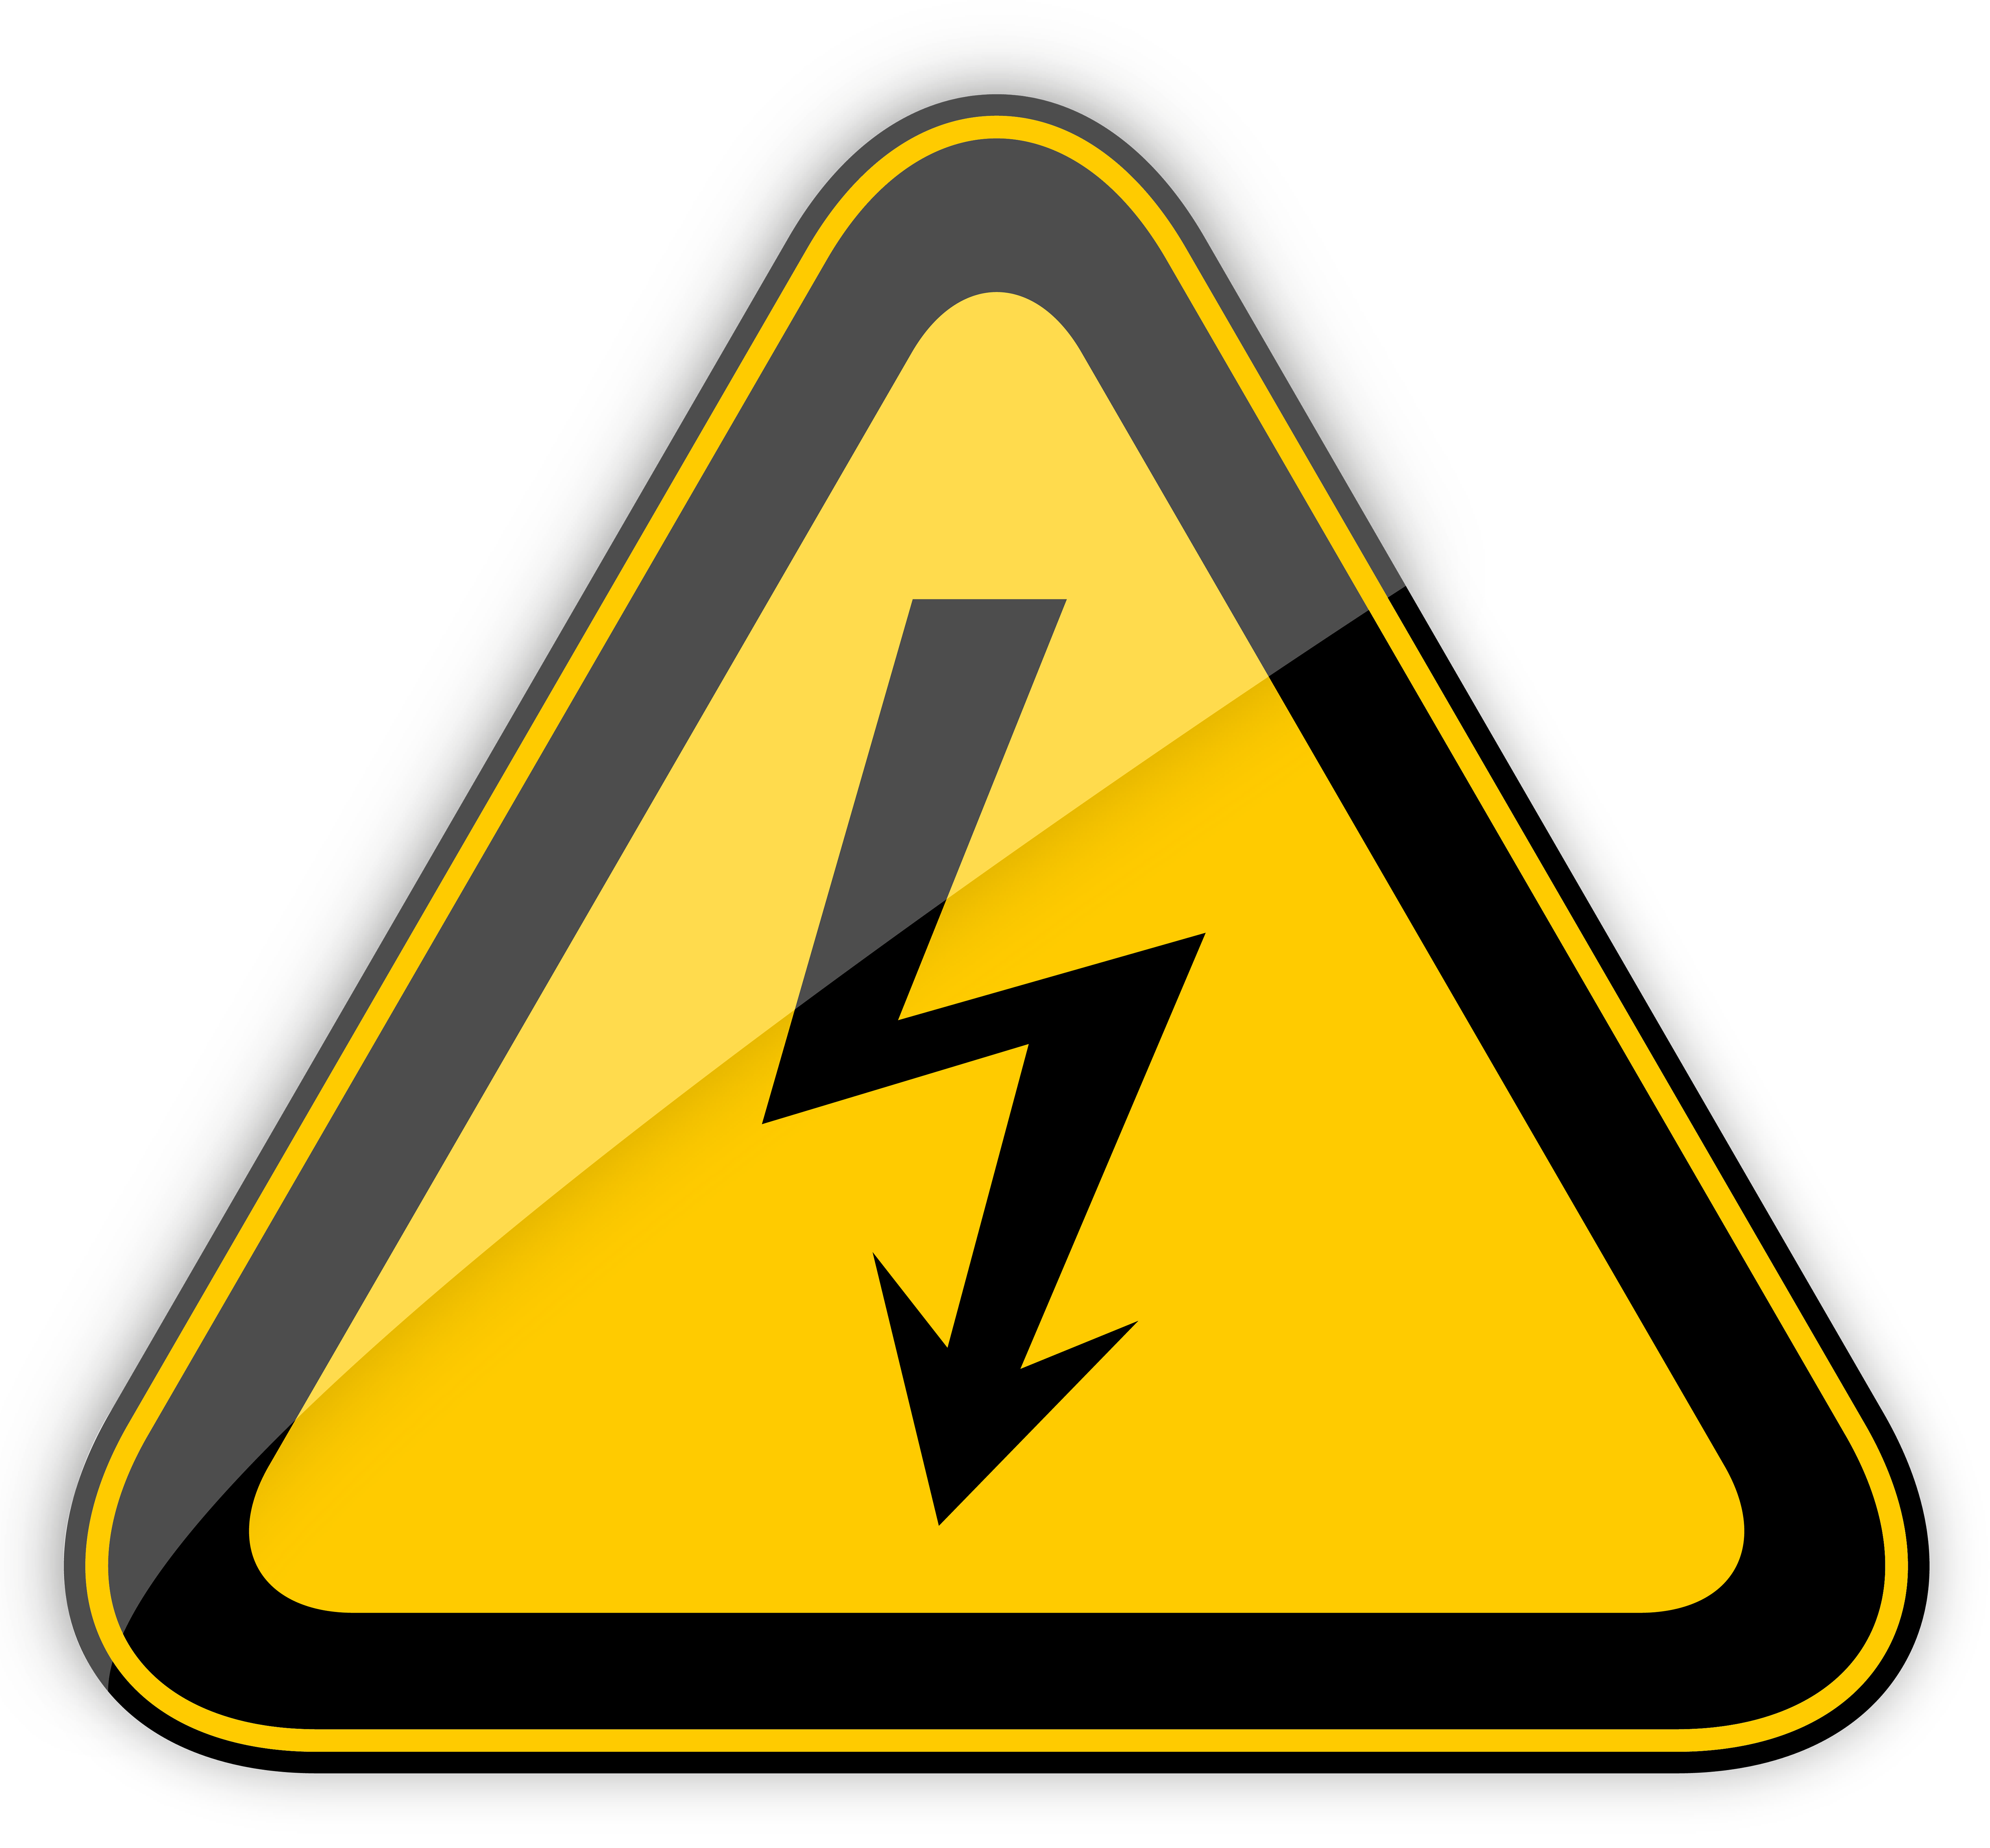 Caution sign png. High voltage warning clipart